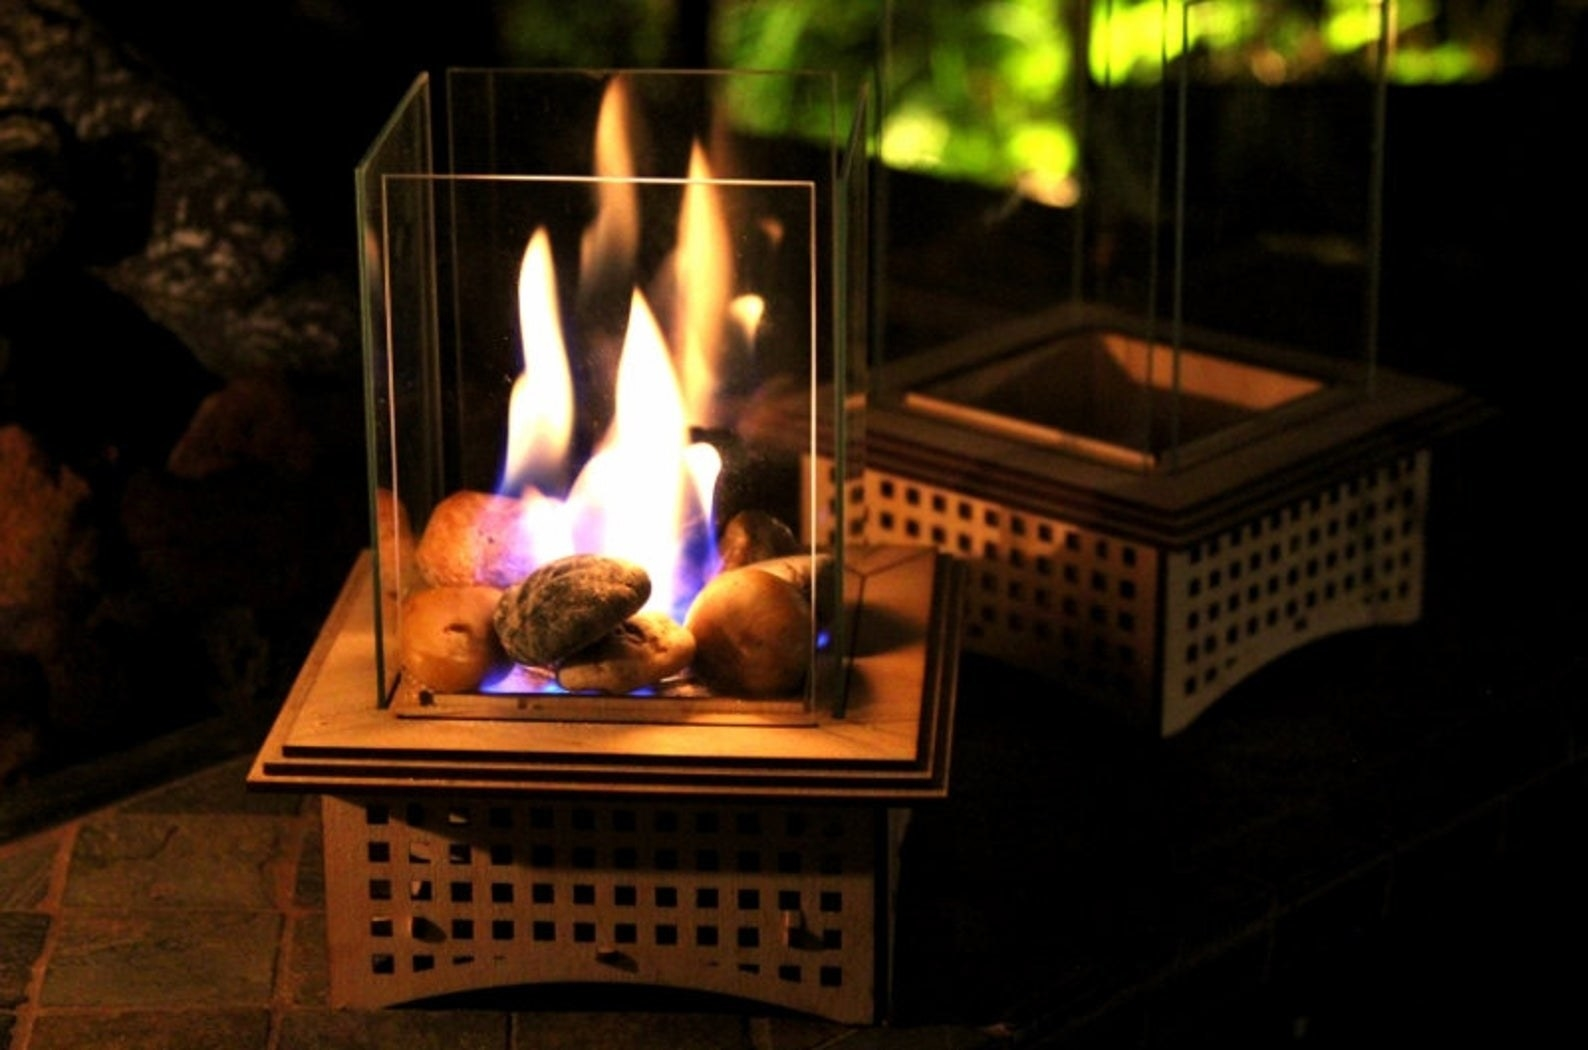 A mini glass encased fireplace burning on a table